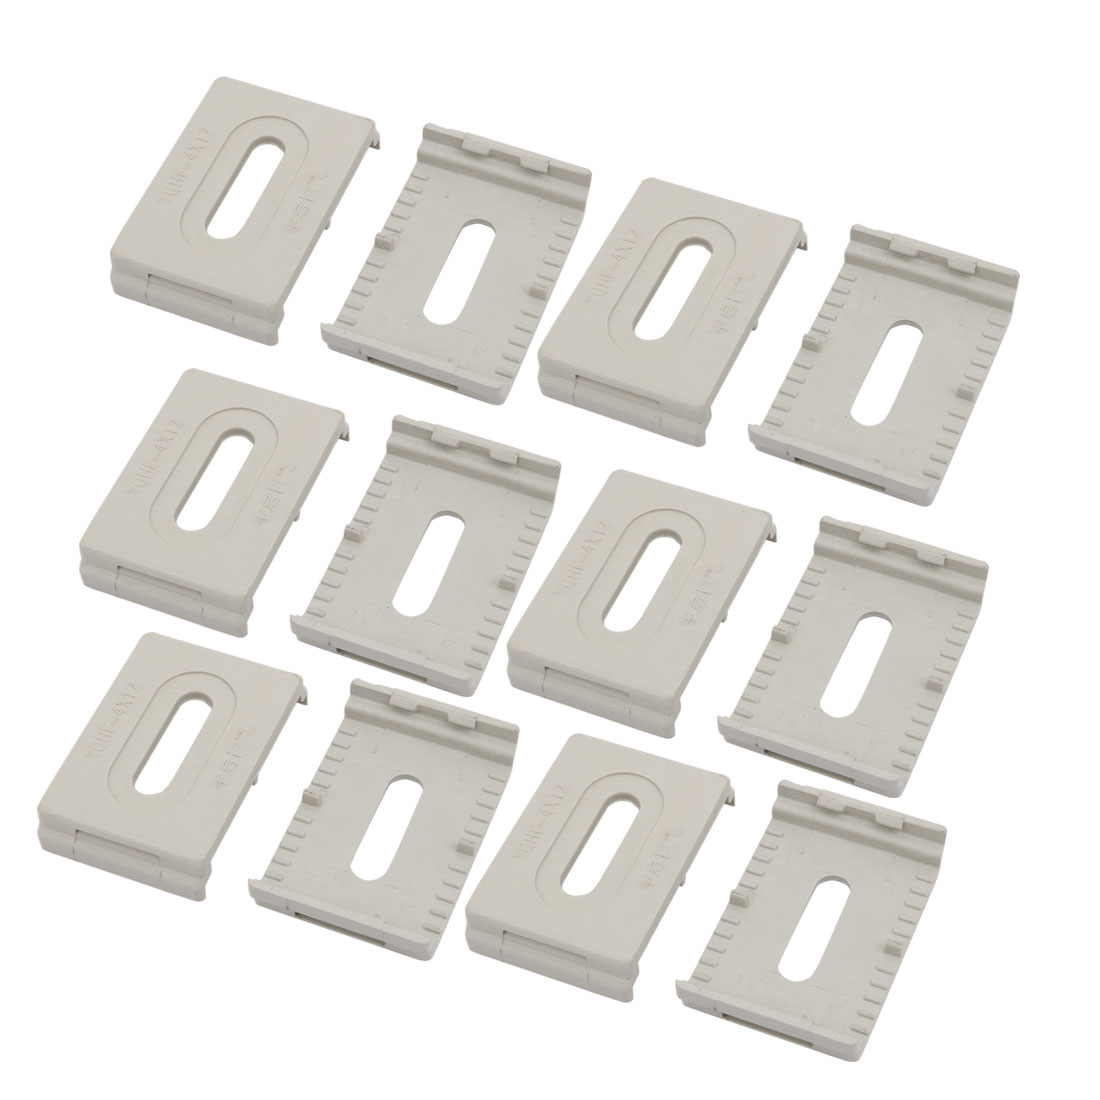 12 Pcs Plastic 60x40x12mm Cable Line Holder Wire Organizer Grey for Office